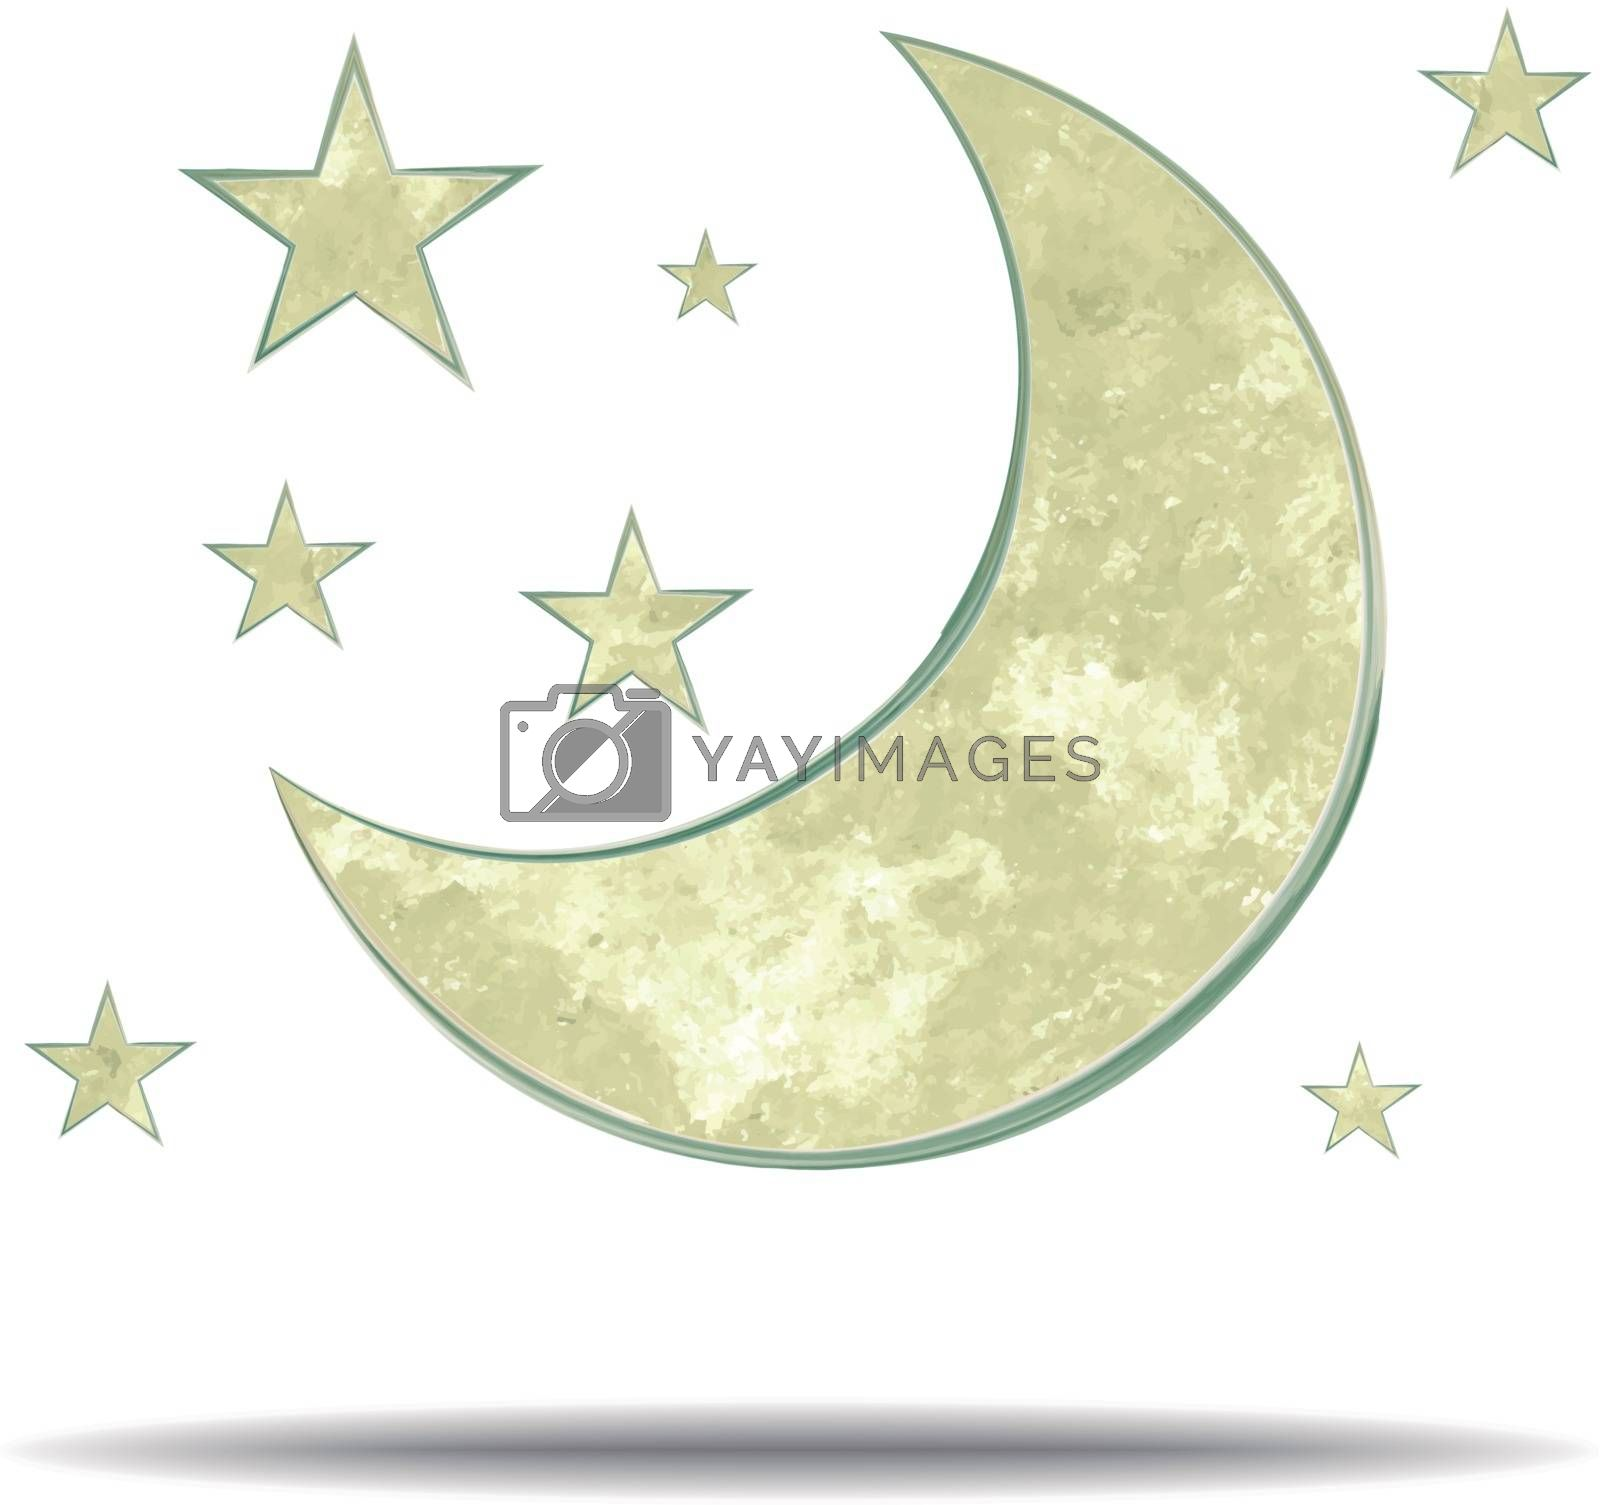 grunge illustration of a moon and stars